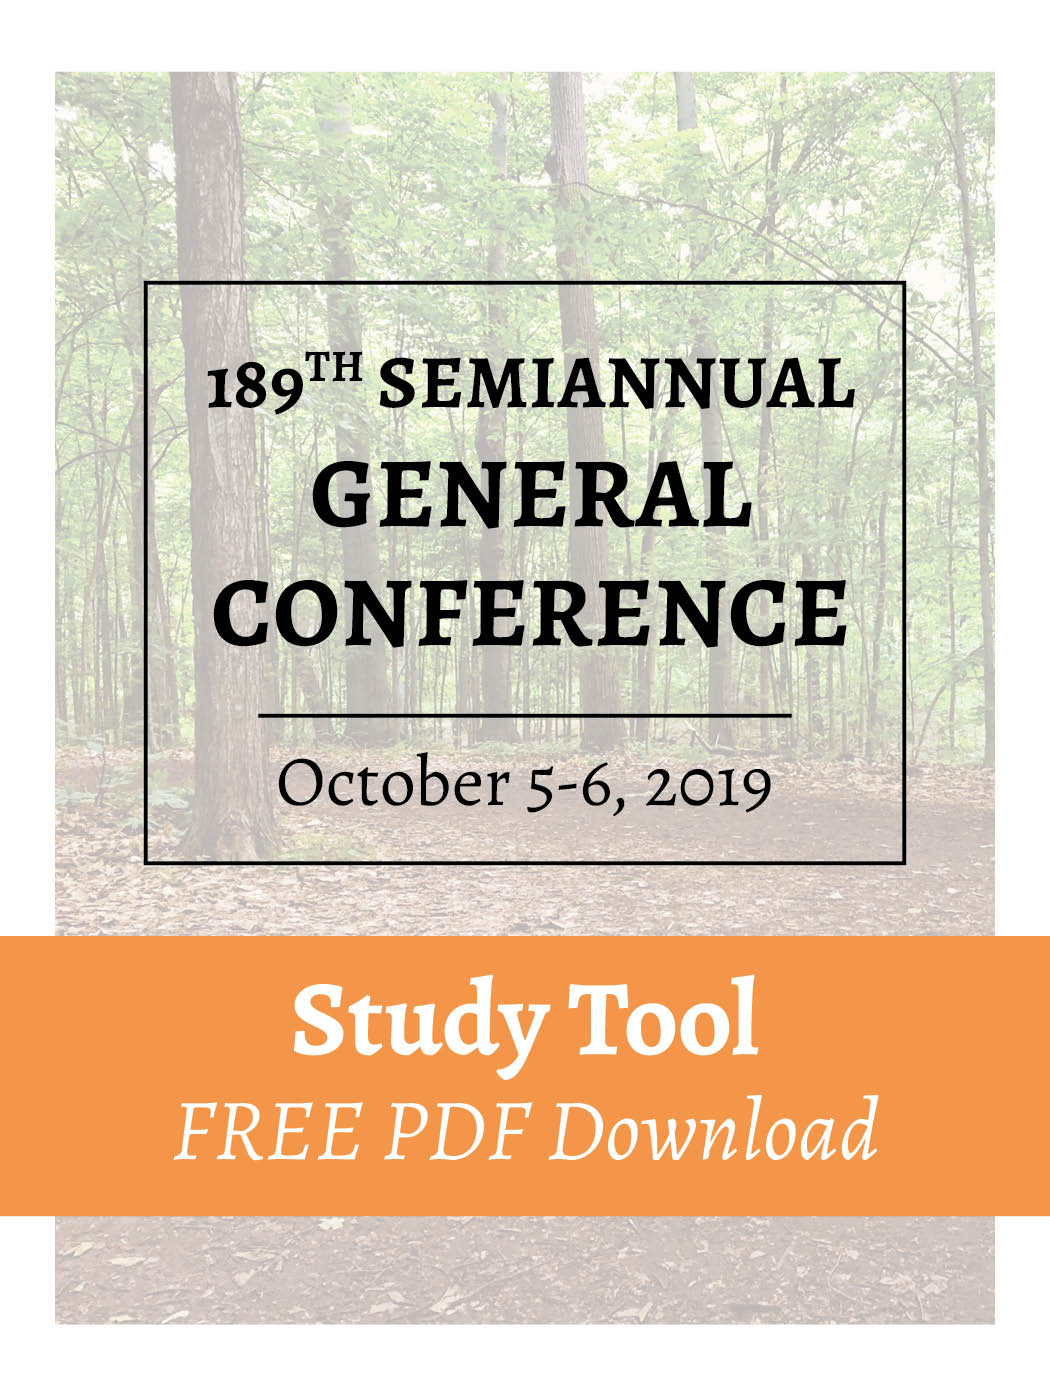 FREE PDF Download – Oct 2019 – General Conference Study Tool